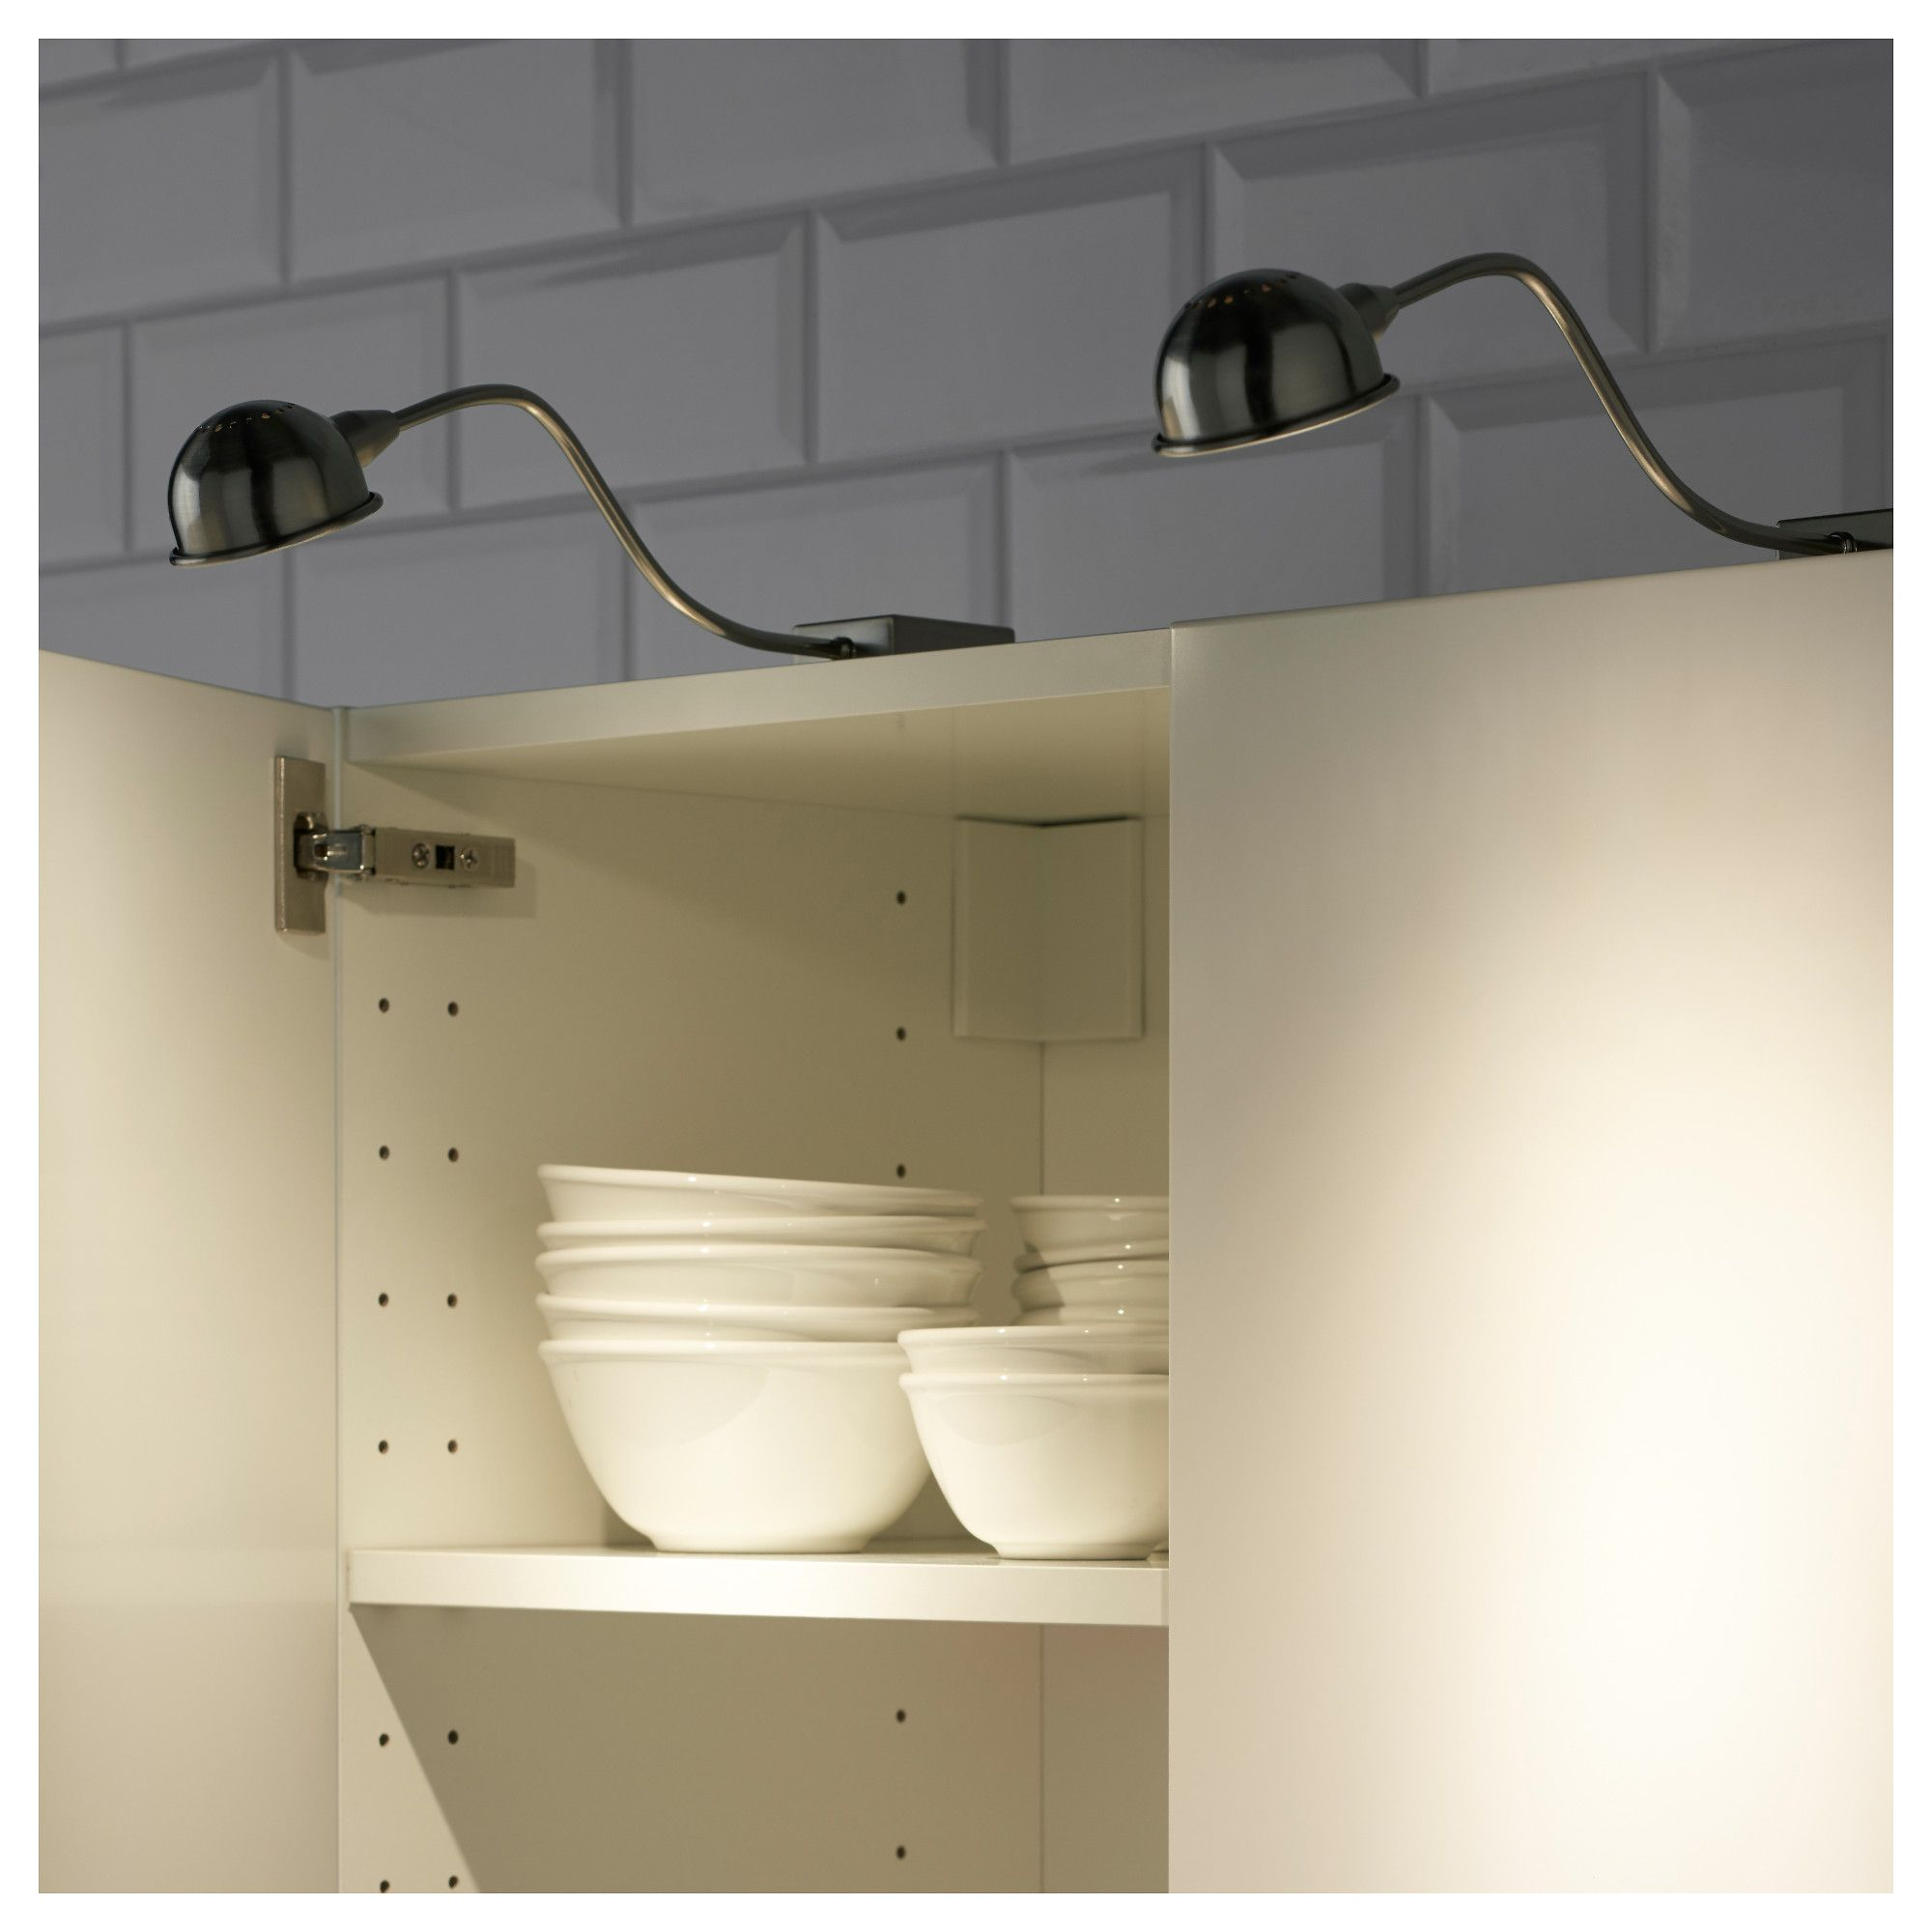 Ikea Format Led Cabinet Light Nickel Plated Products In